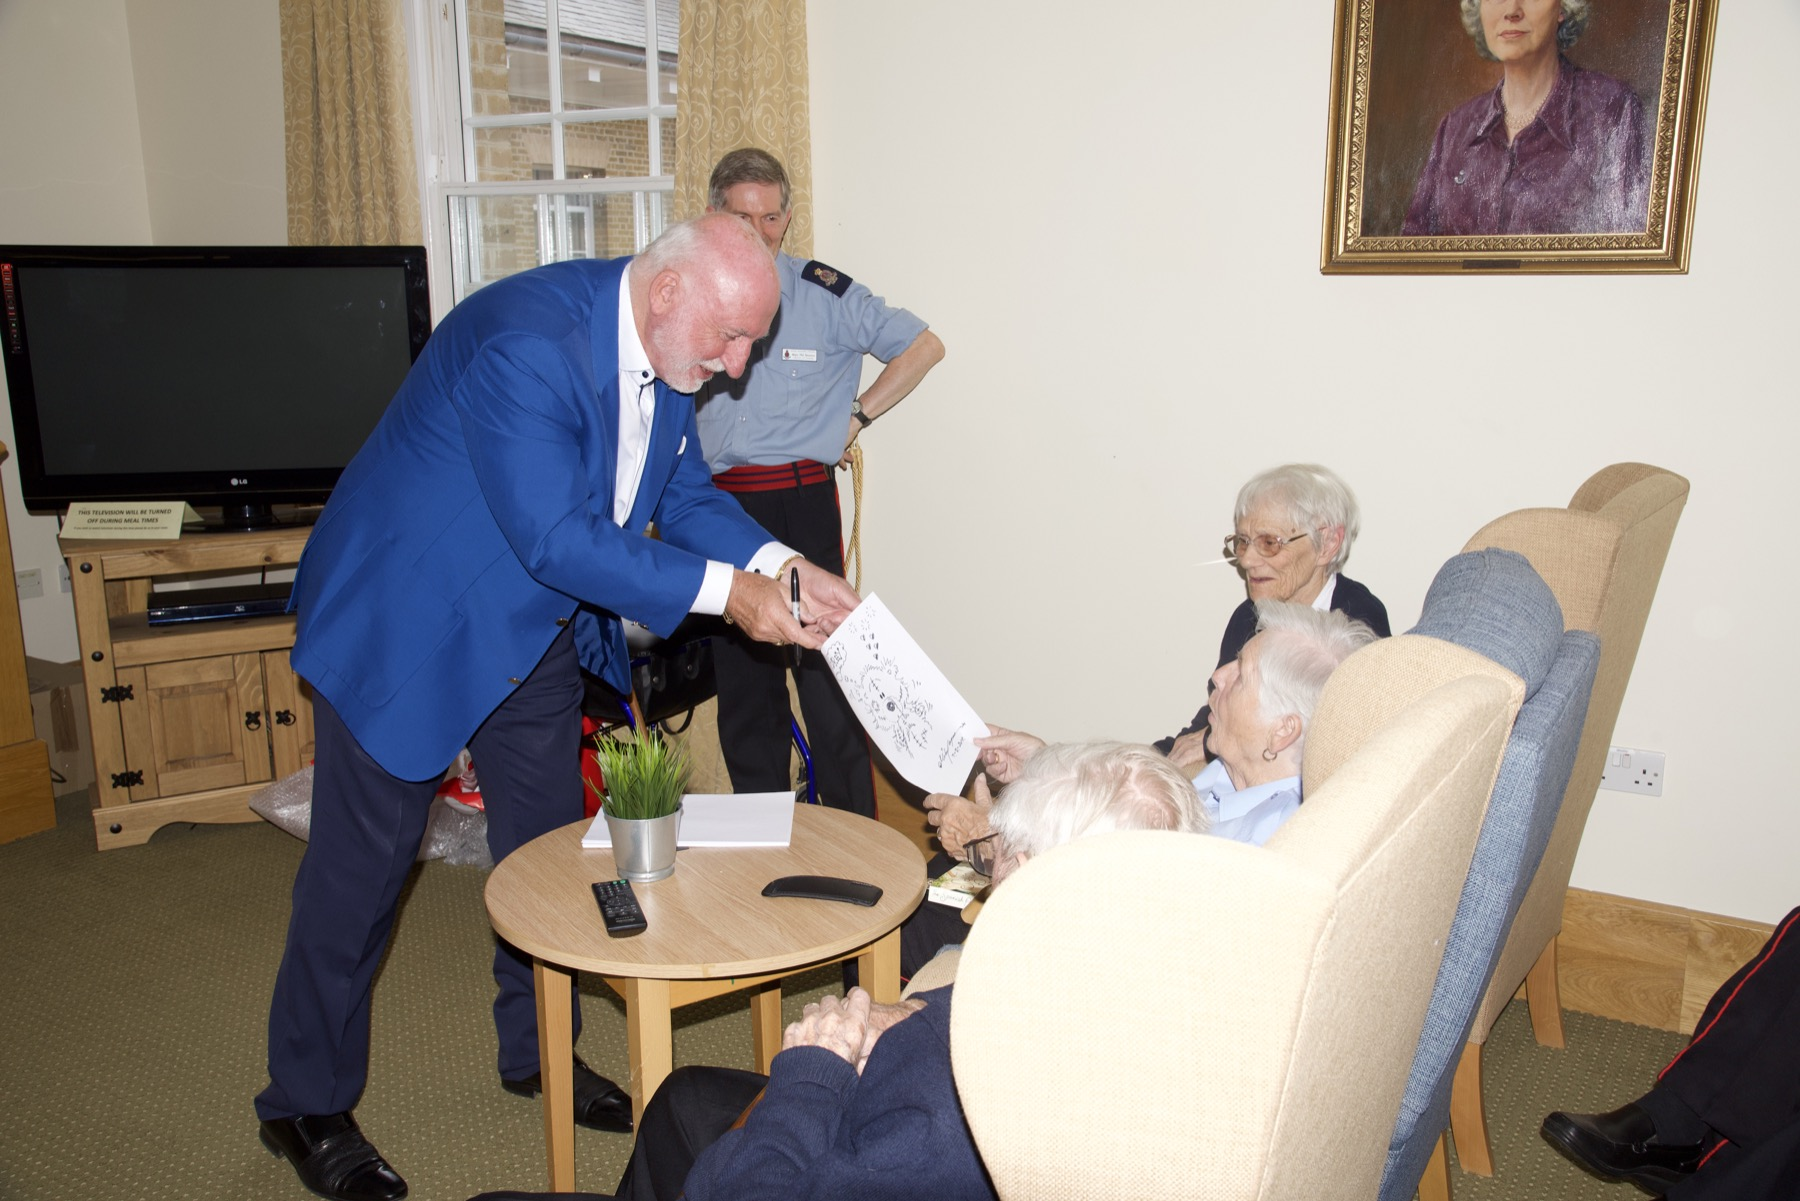 Mike Payne presents illustration to Chelsea Pensioner